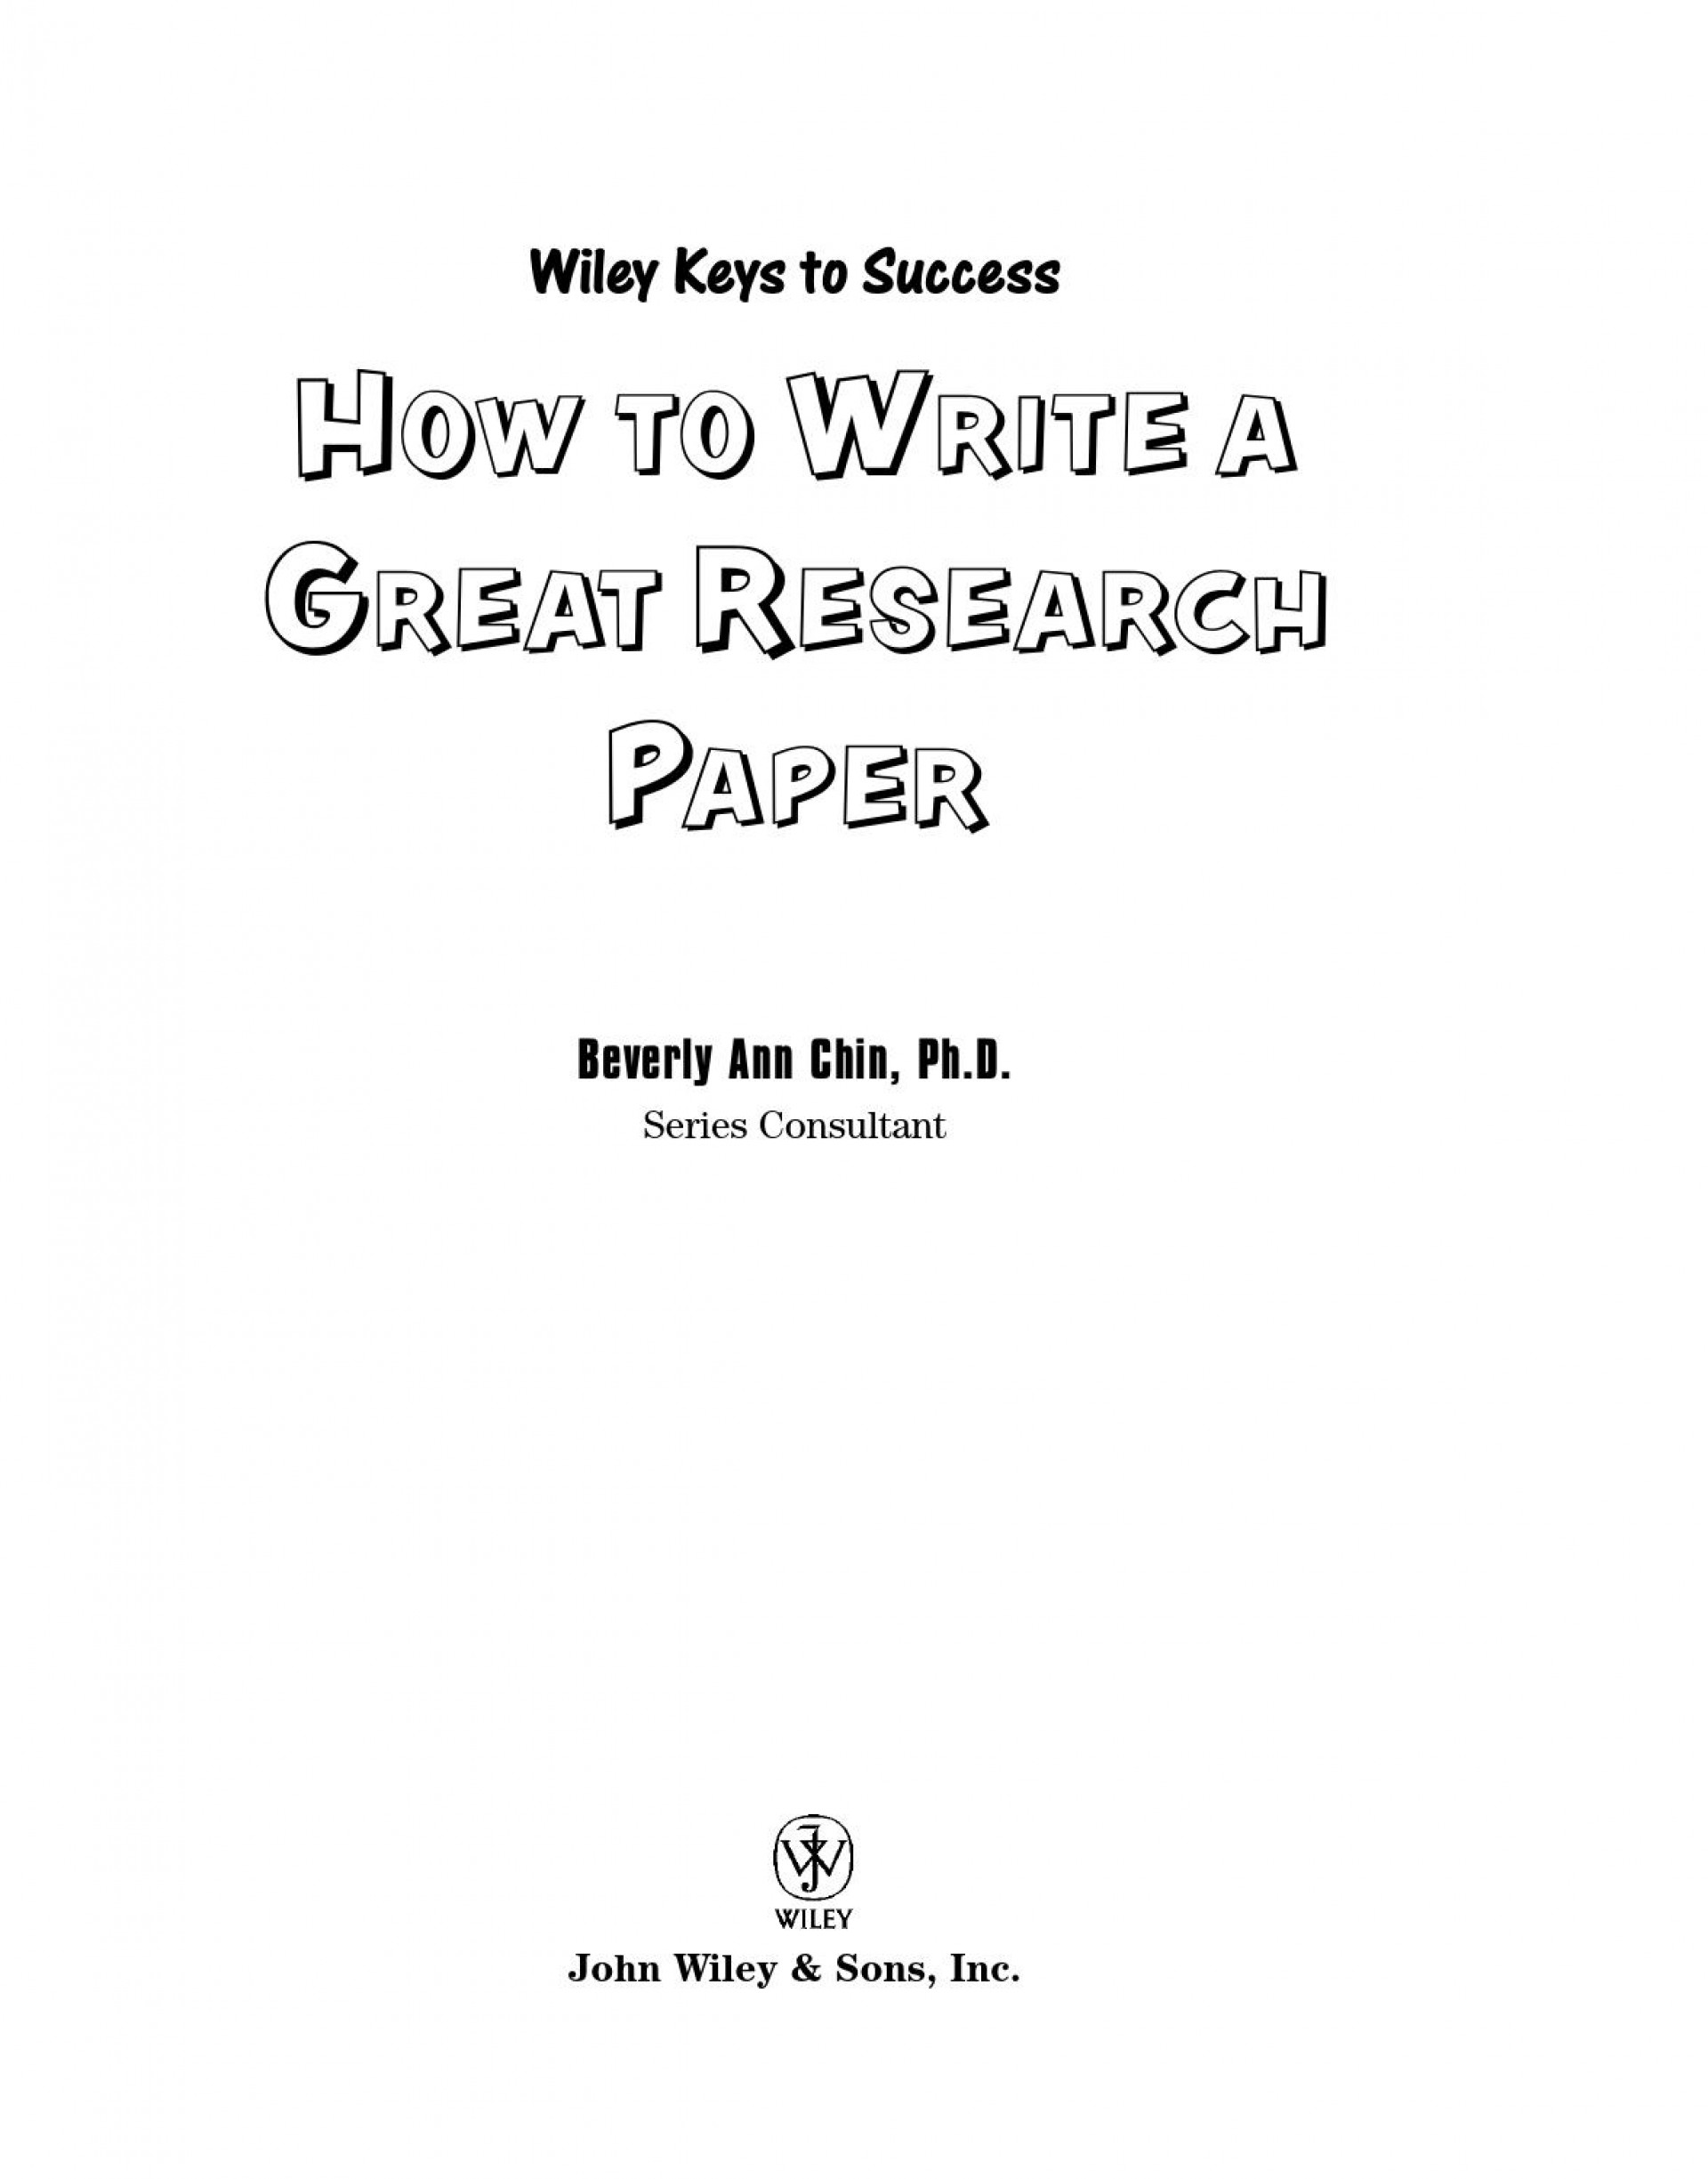 001 Research Paper How To Write Great Wiley Keys Success Page 1 Archaicawful A (wiley Success) 1920